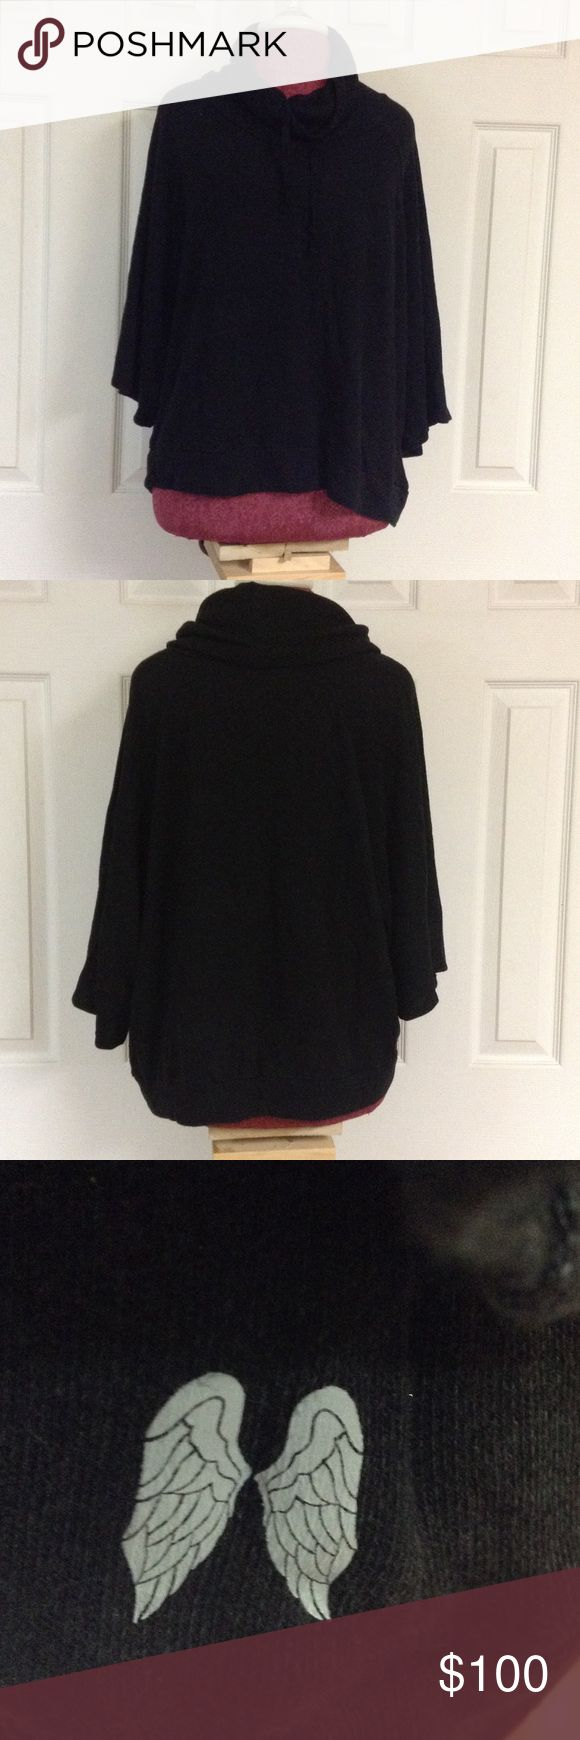 Victoria's Secret size XL black long sleeve poncho For sale we have a Victoria's Secret black size XL  long sleeve poncho with the angel wings symbol. Great shape no stains or tears. Jackets & Coats